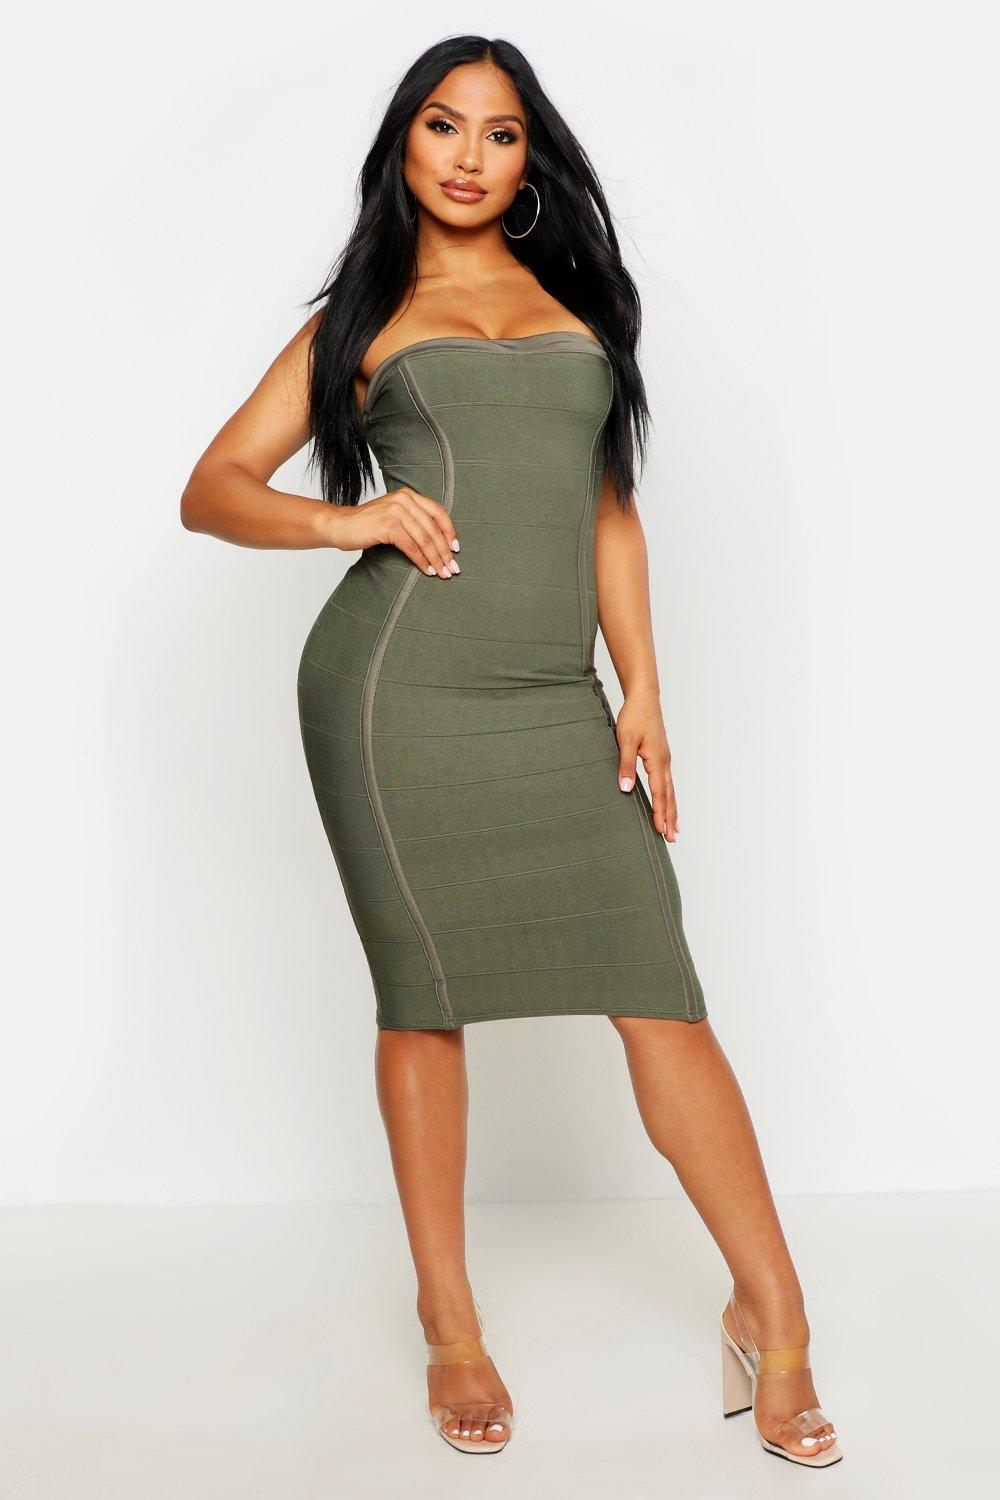 River island bodycon where dresses in stores buy